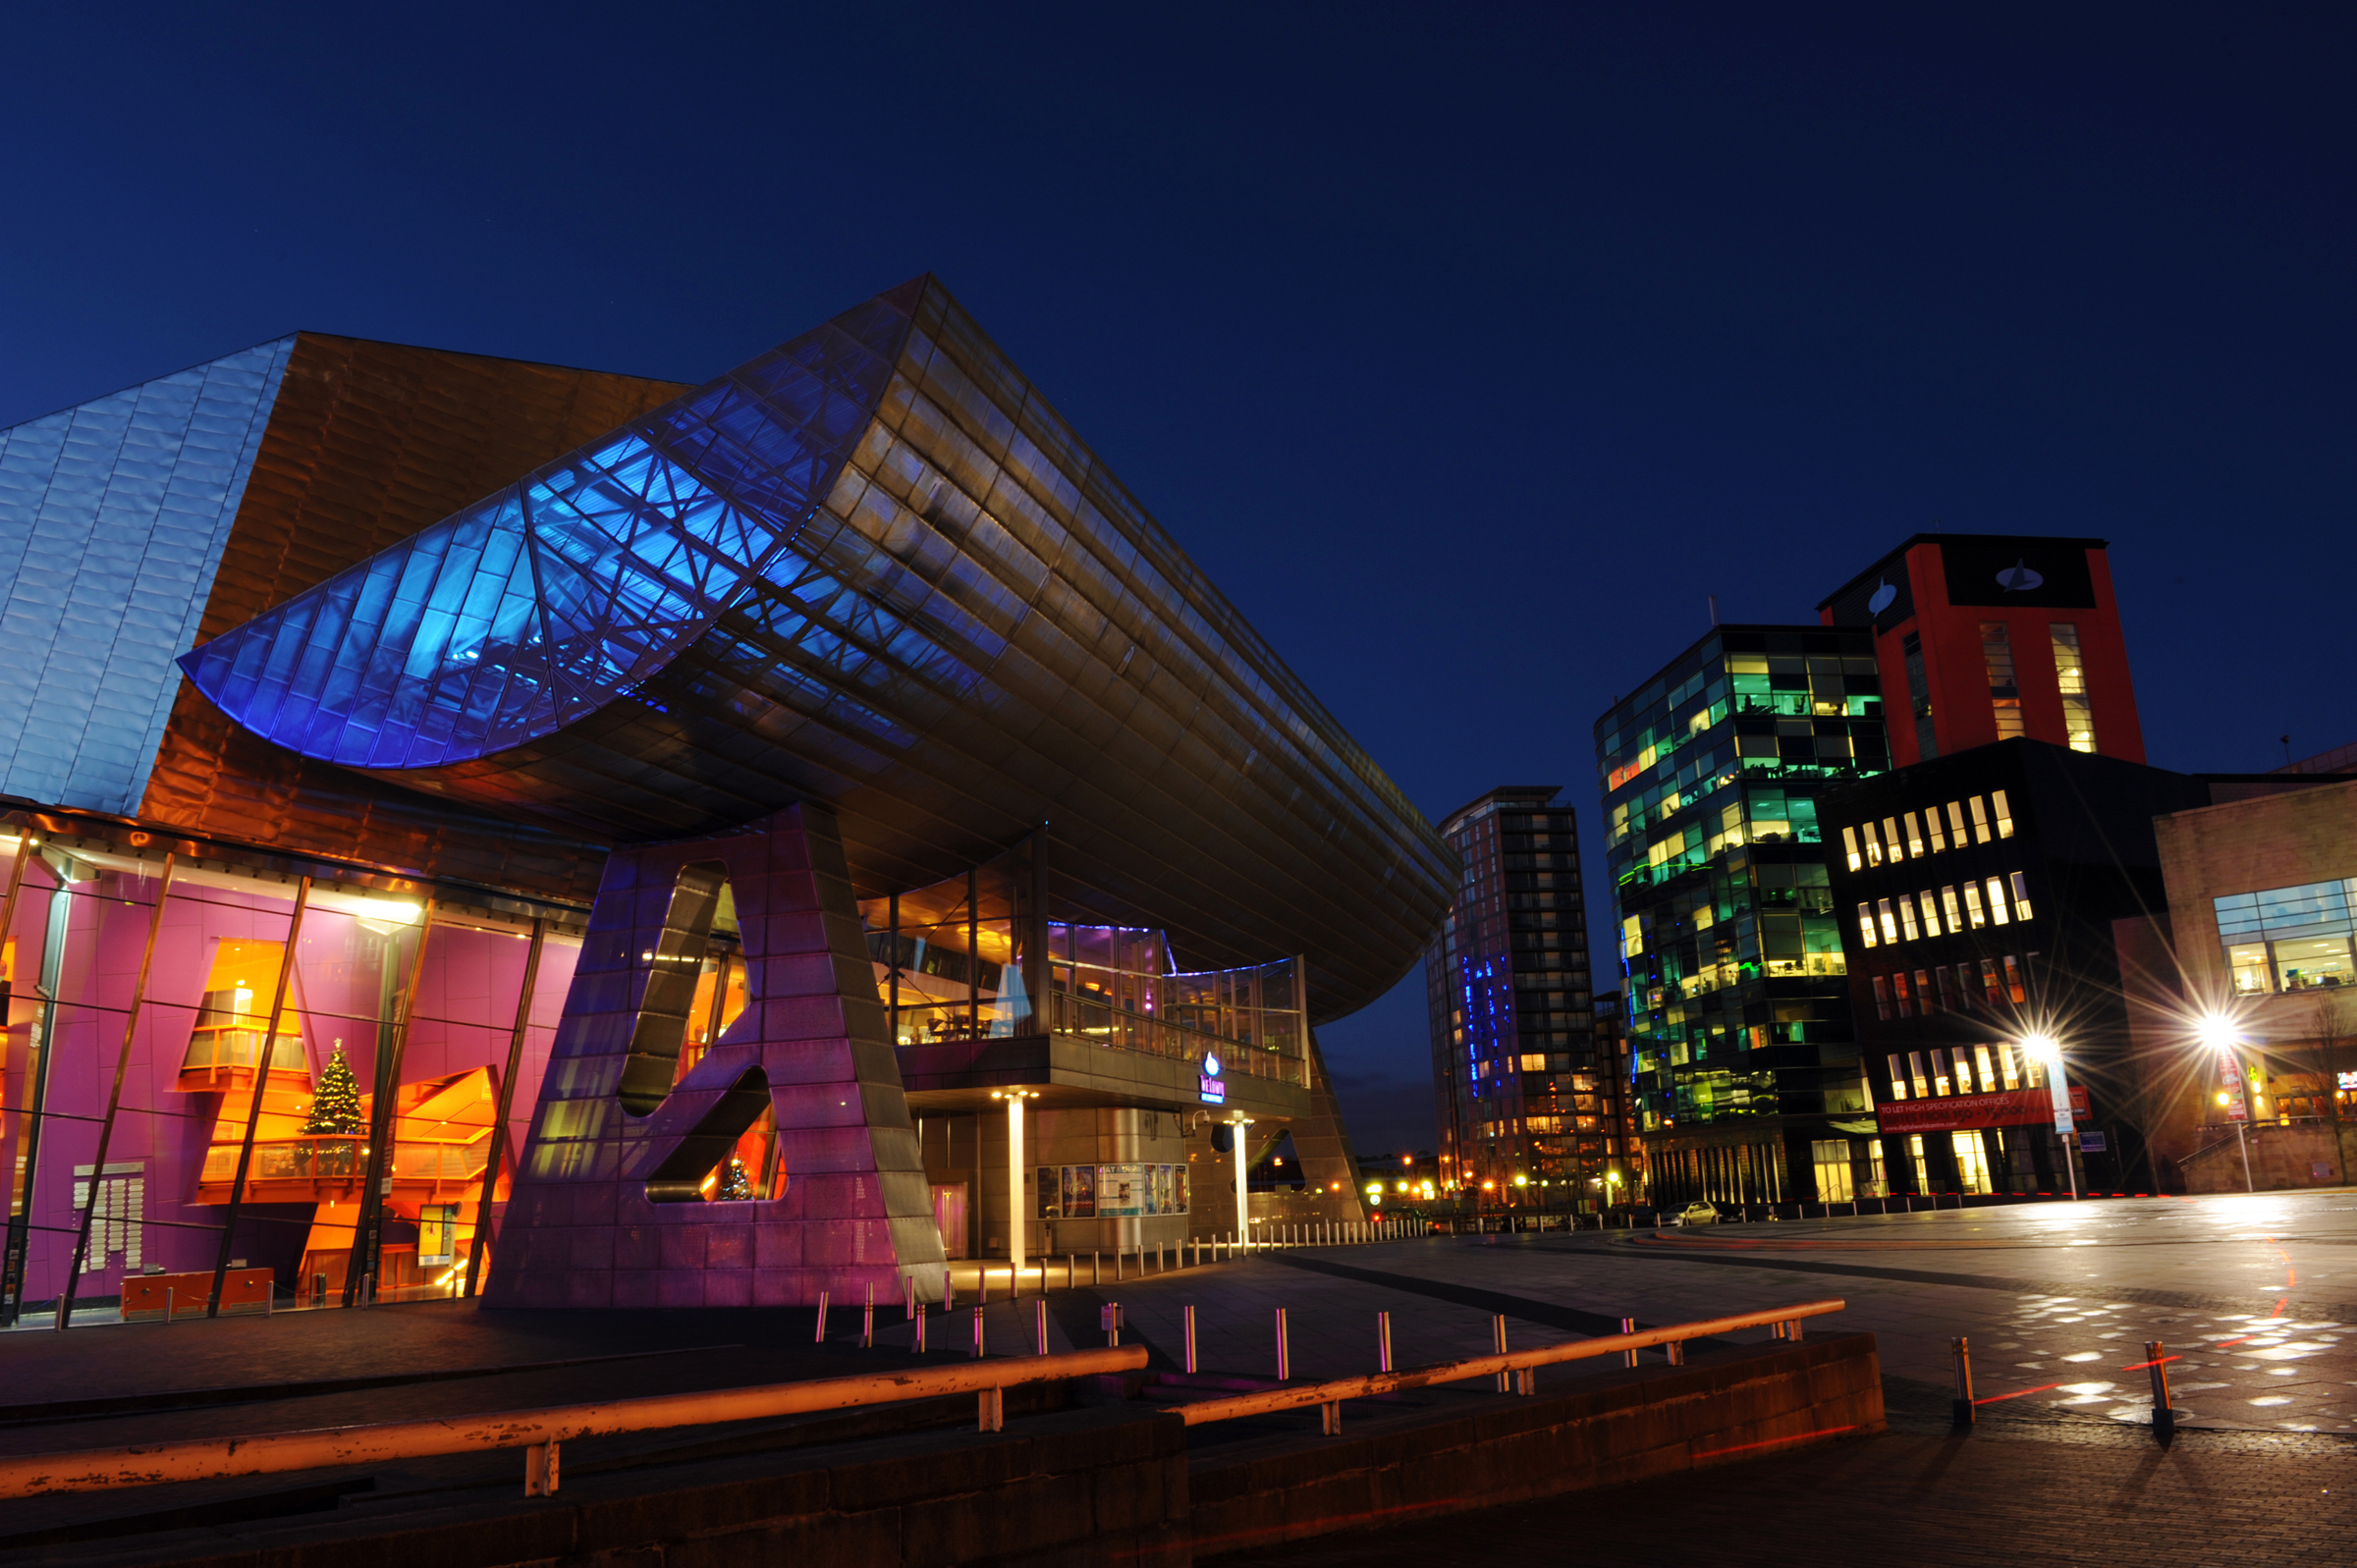 The Lowry Theatre and surroundings